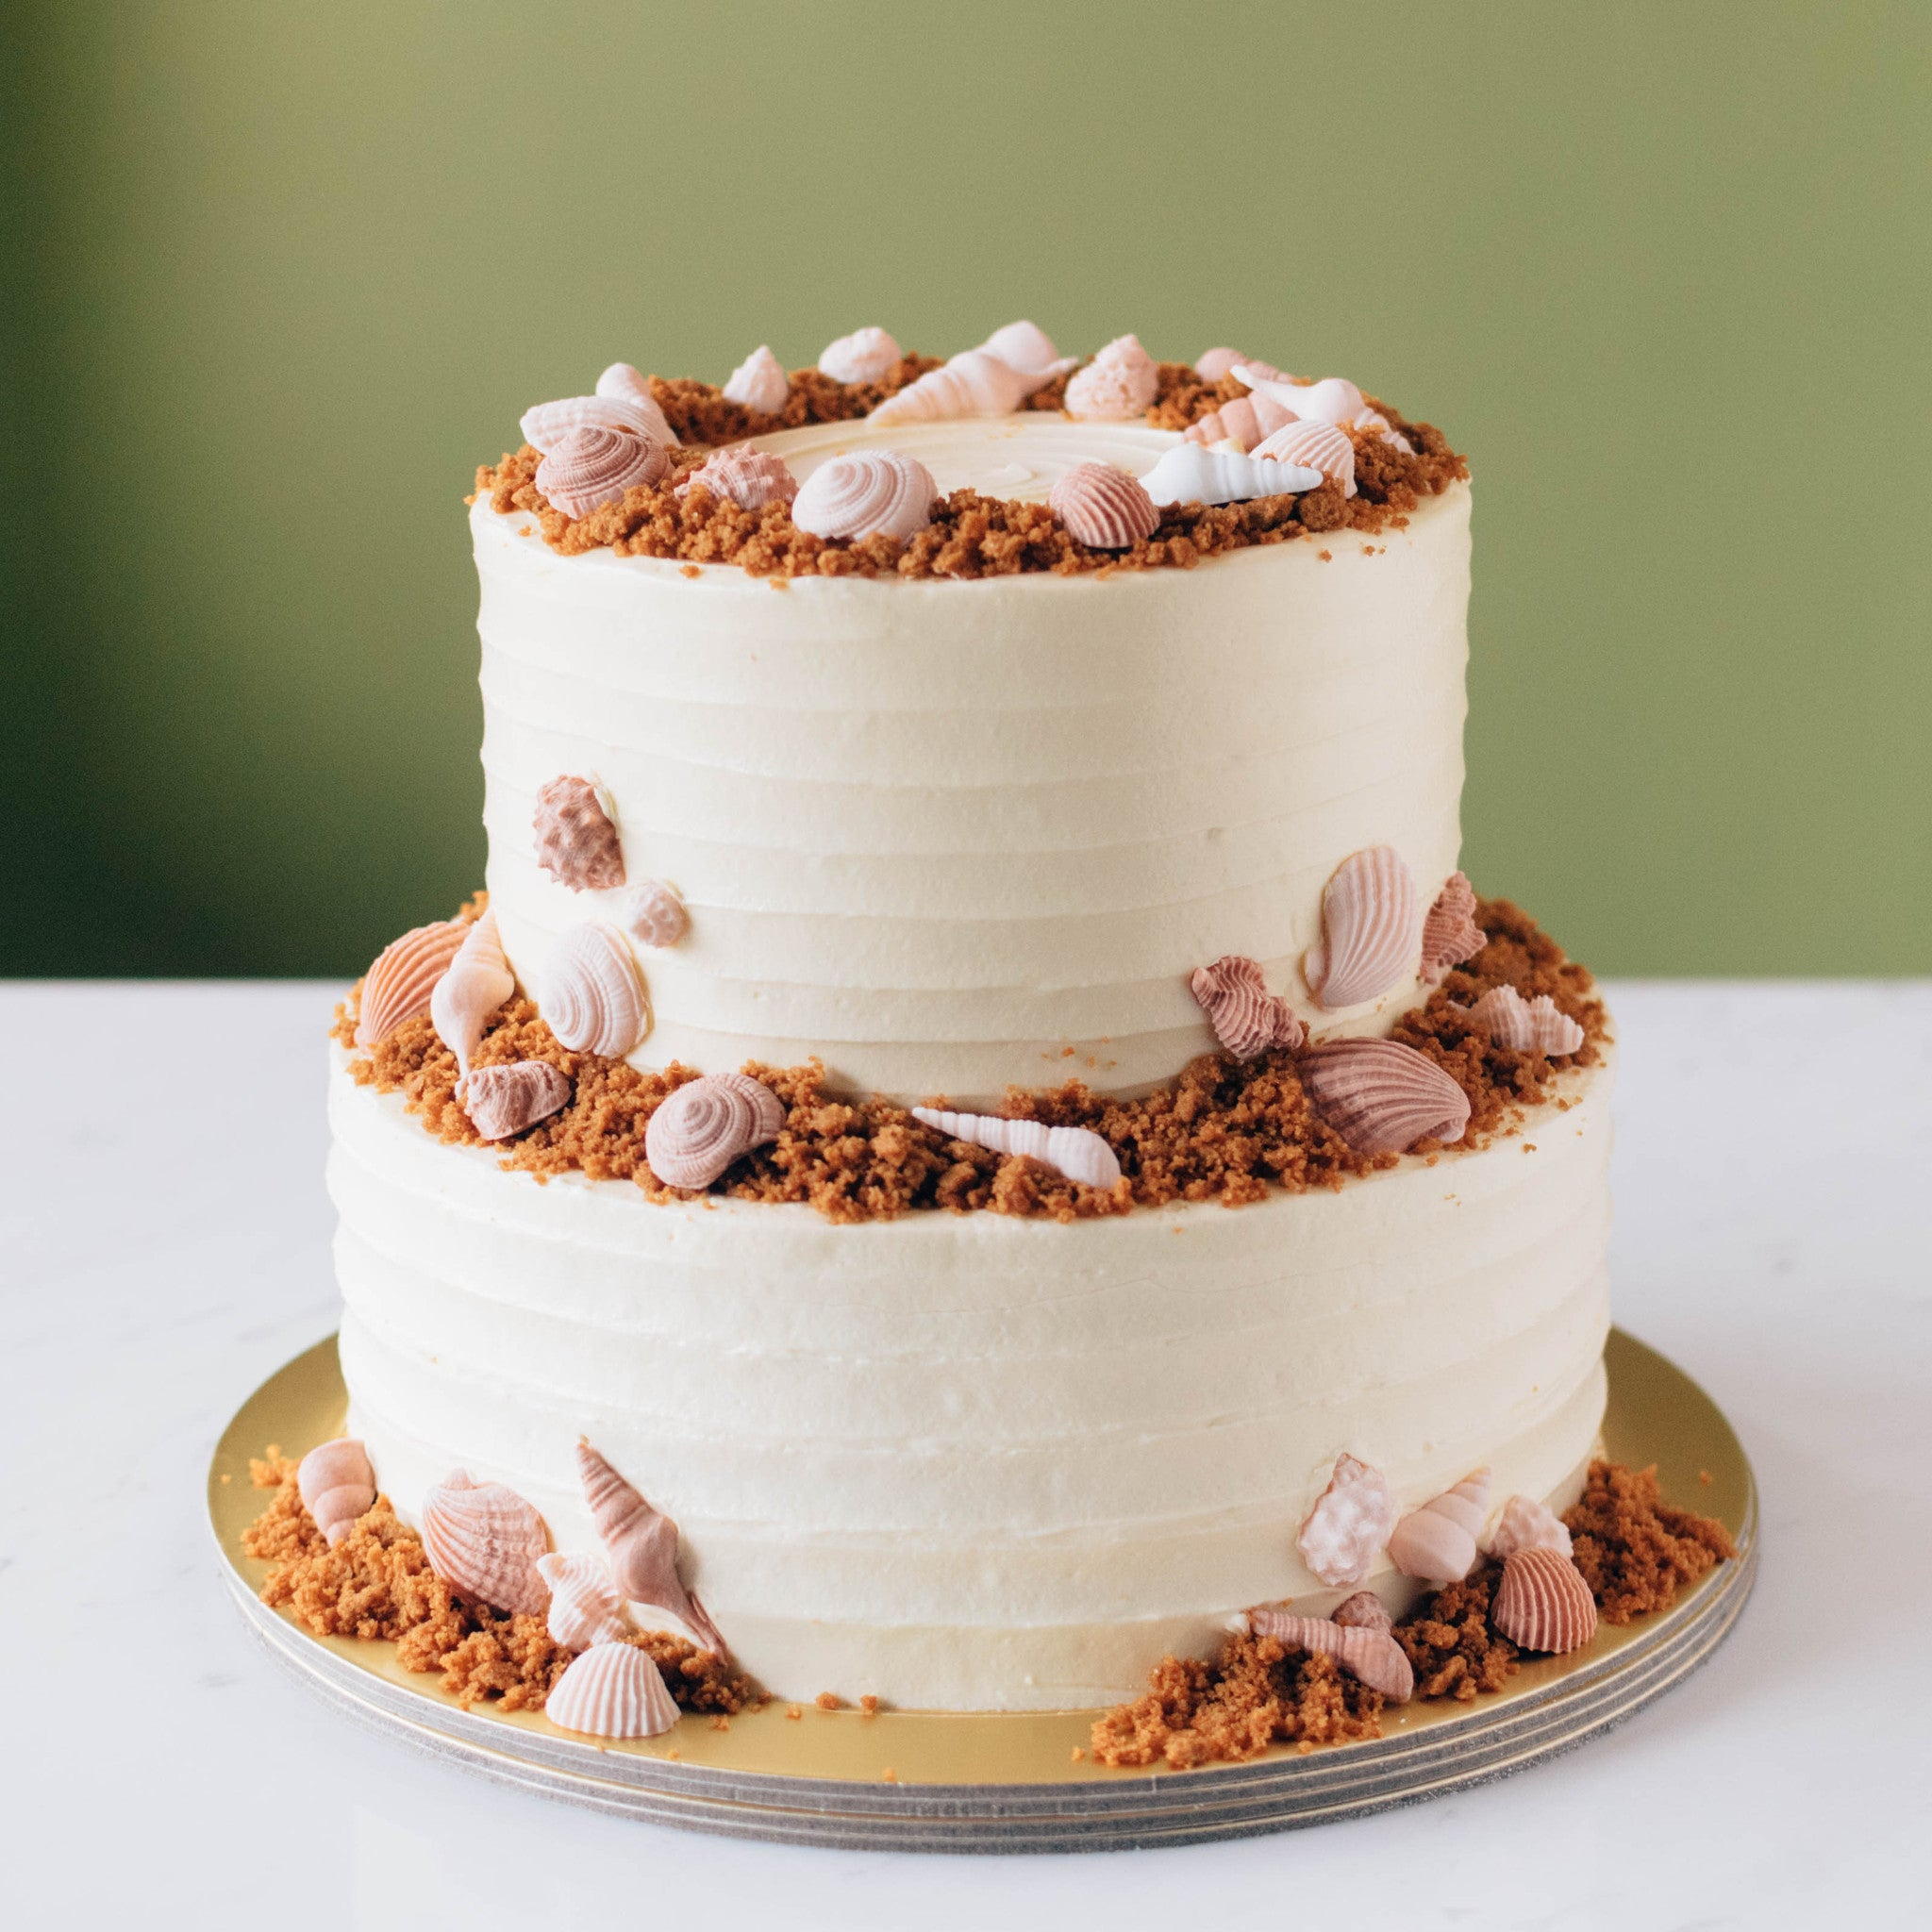 Two-Tier White Striped with Crumble and Seashells - Custom Bakes by Edith Patisserie